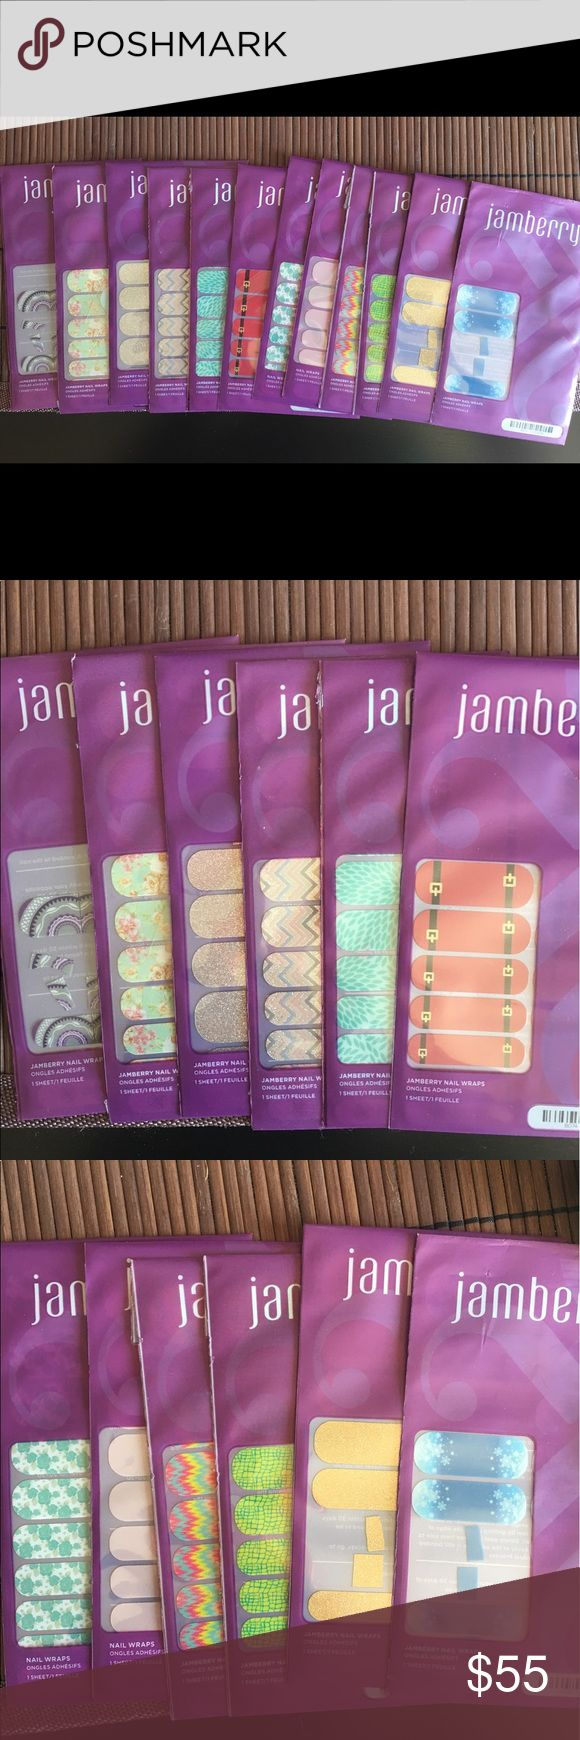 Jamberry Nail wrap bundle 12 nail wrap packages. Most unopened and some are missing just a few. Trying to get rid of them all. Also have a mini heater for sale if interested. This are a list of the wraps I have:  Let it Snow Santa suit Lotus Hot to Croc Tropical Mirage Daydream Destiny Sugar and spice Diamond dust sparkle Gold sparkle Vintage Chic Wisteria jamberry Makeup Brushes & Tools